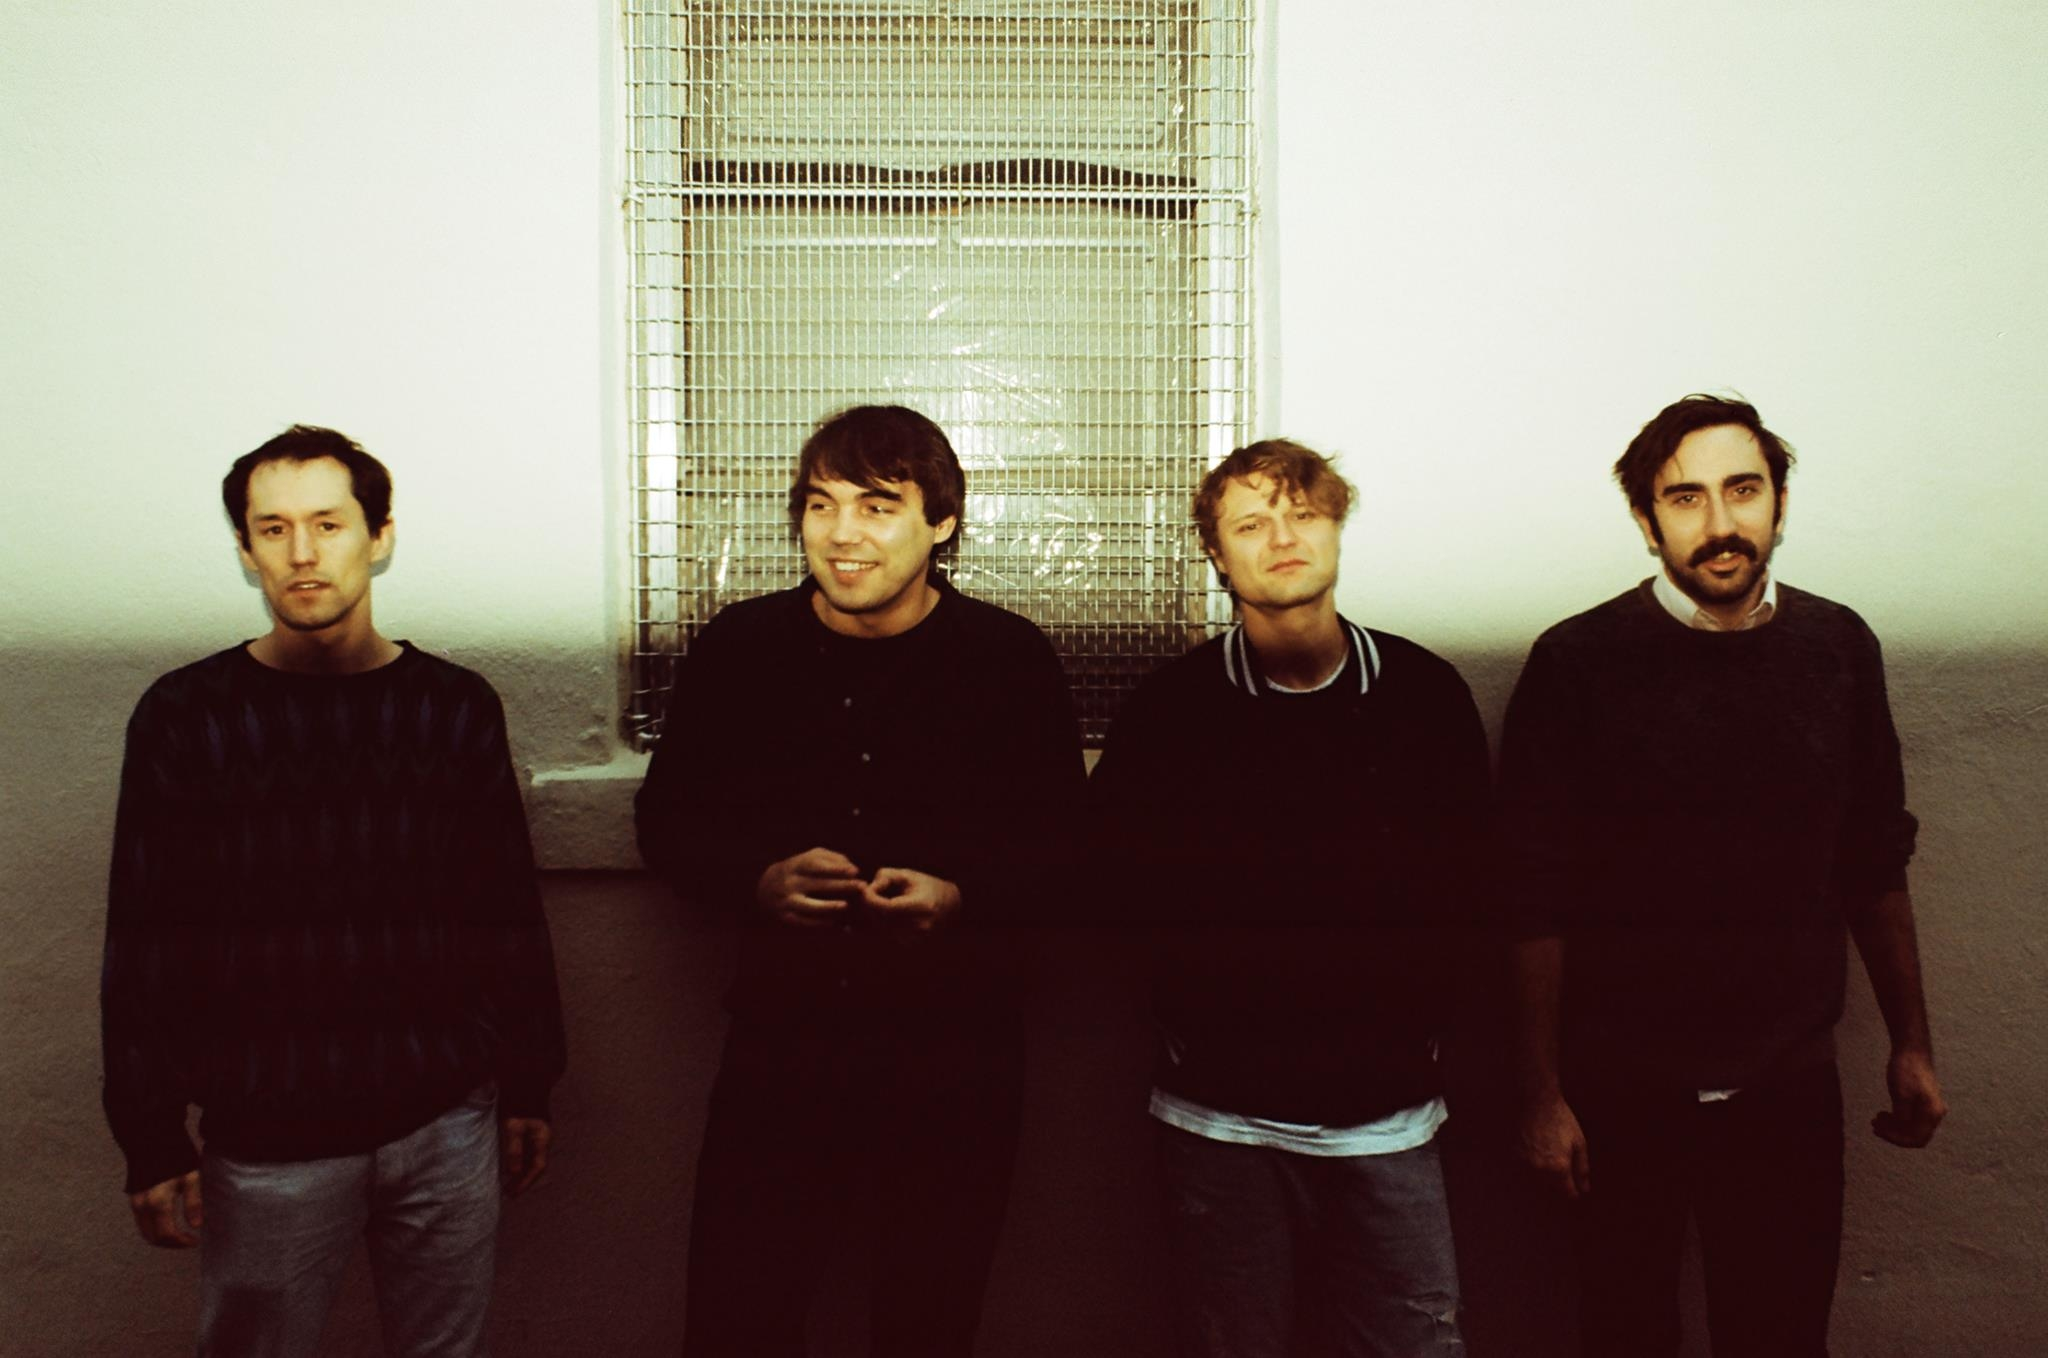 Catching up with Hollerado {Secret show announcement}